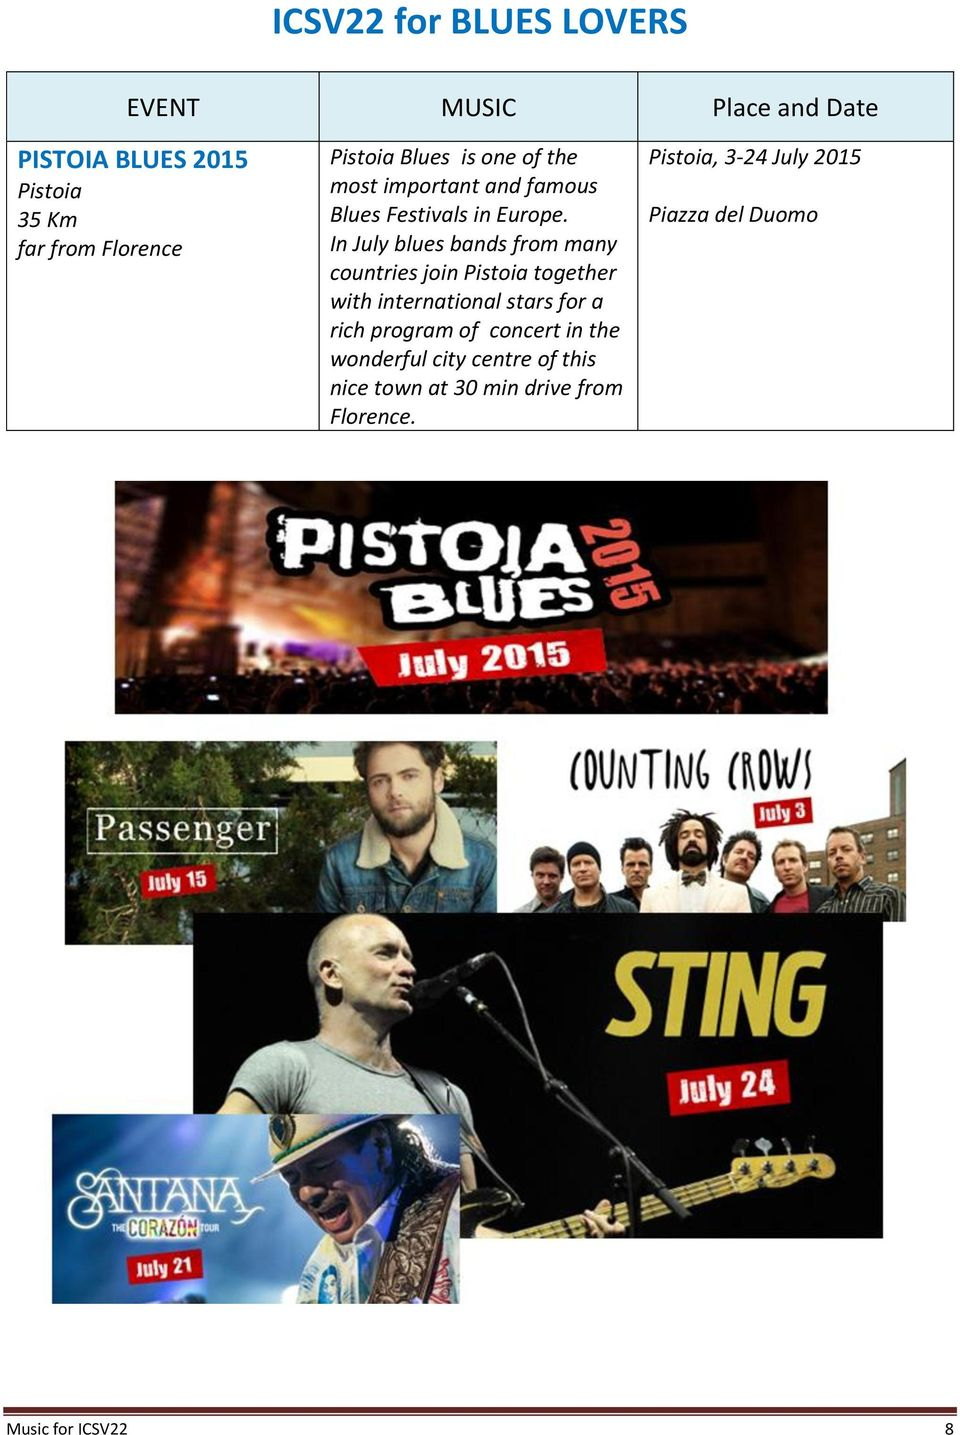 In July blues bands from many countries join Pistoia together with international stars for a rich program of